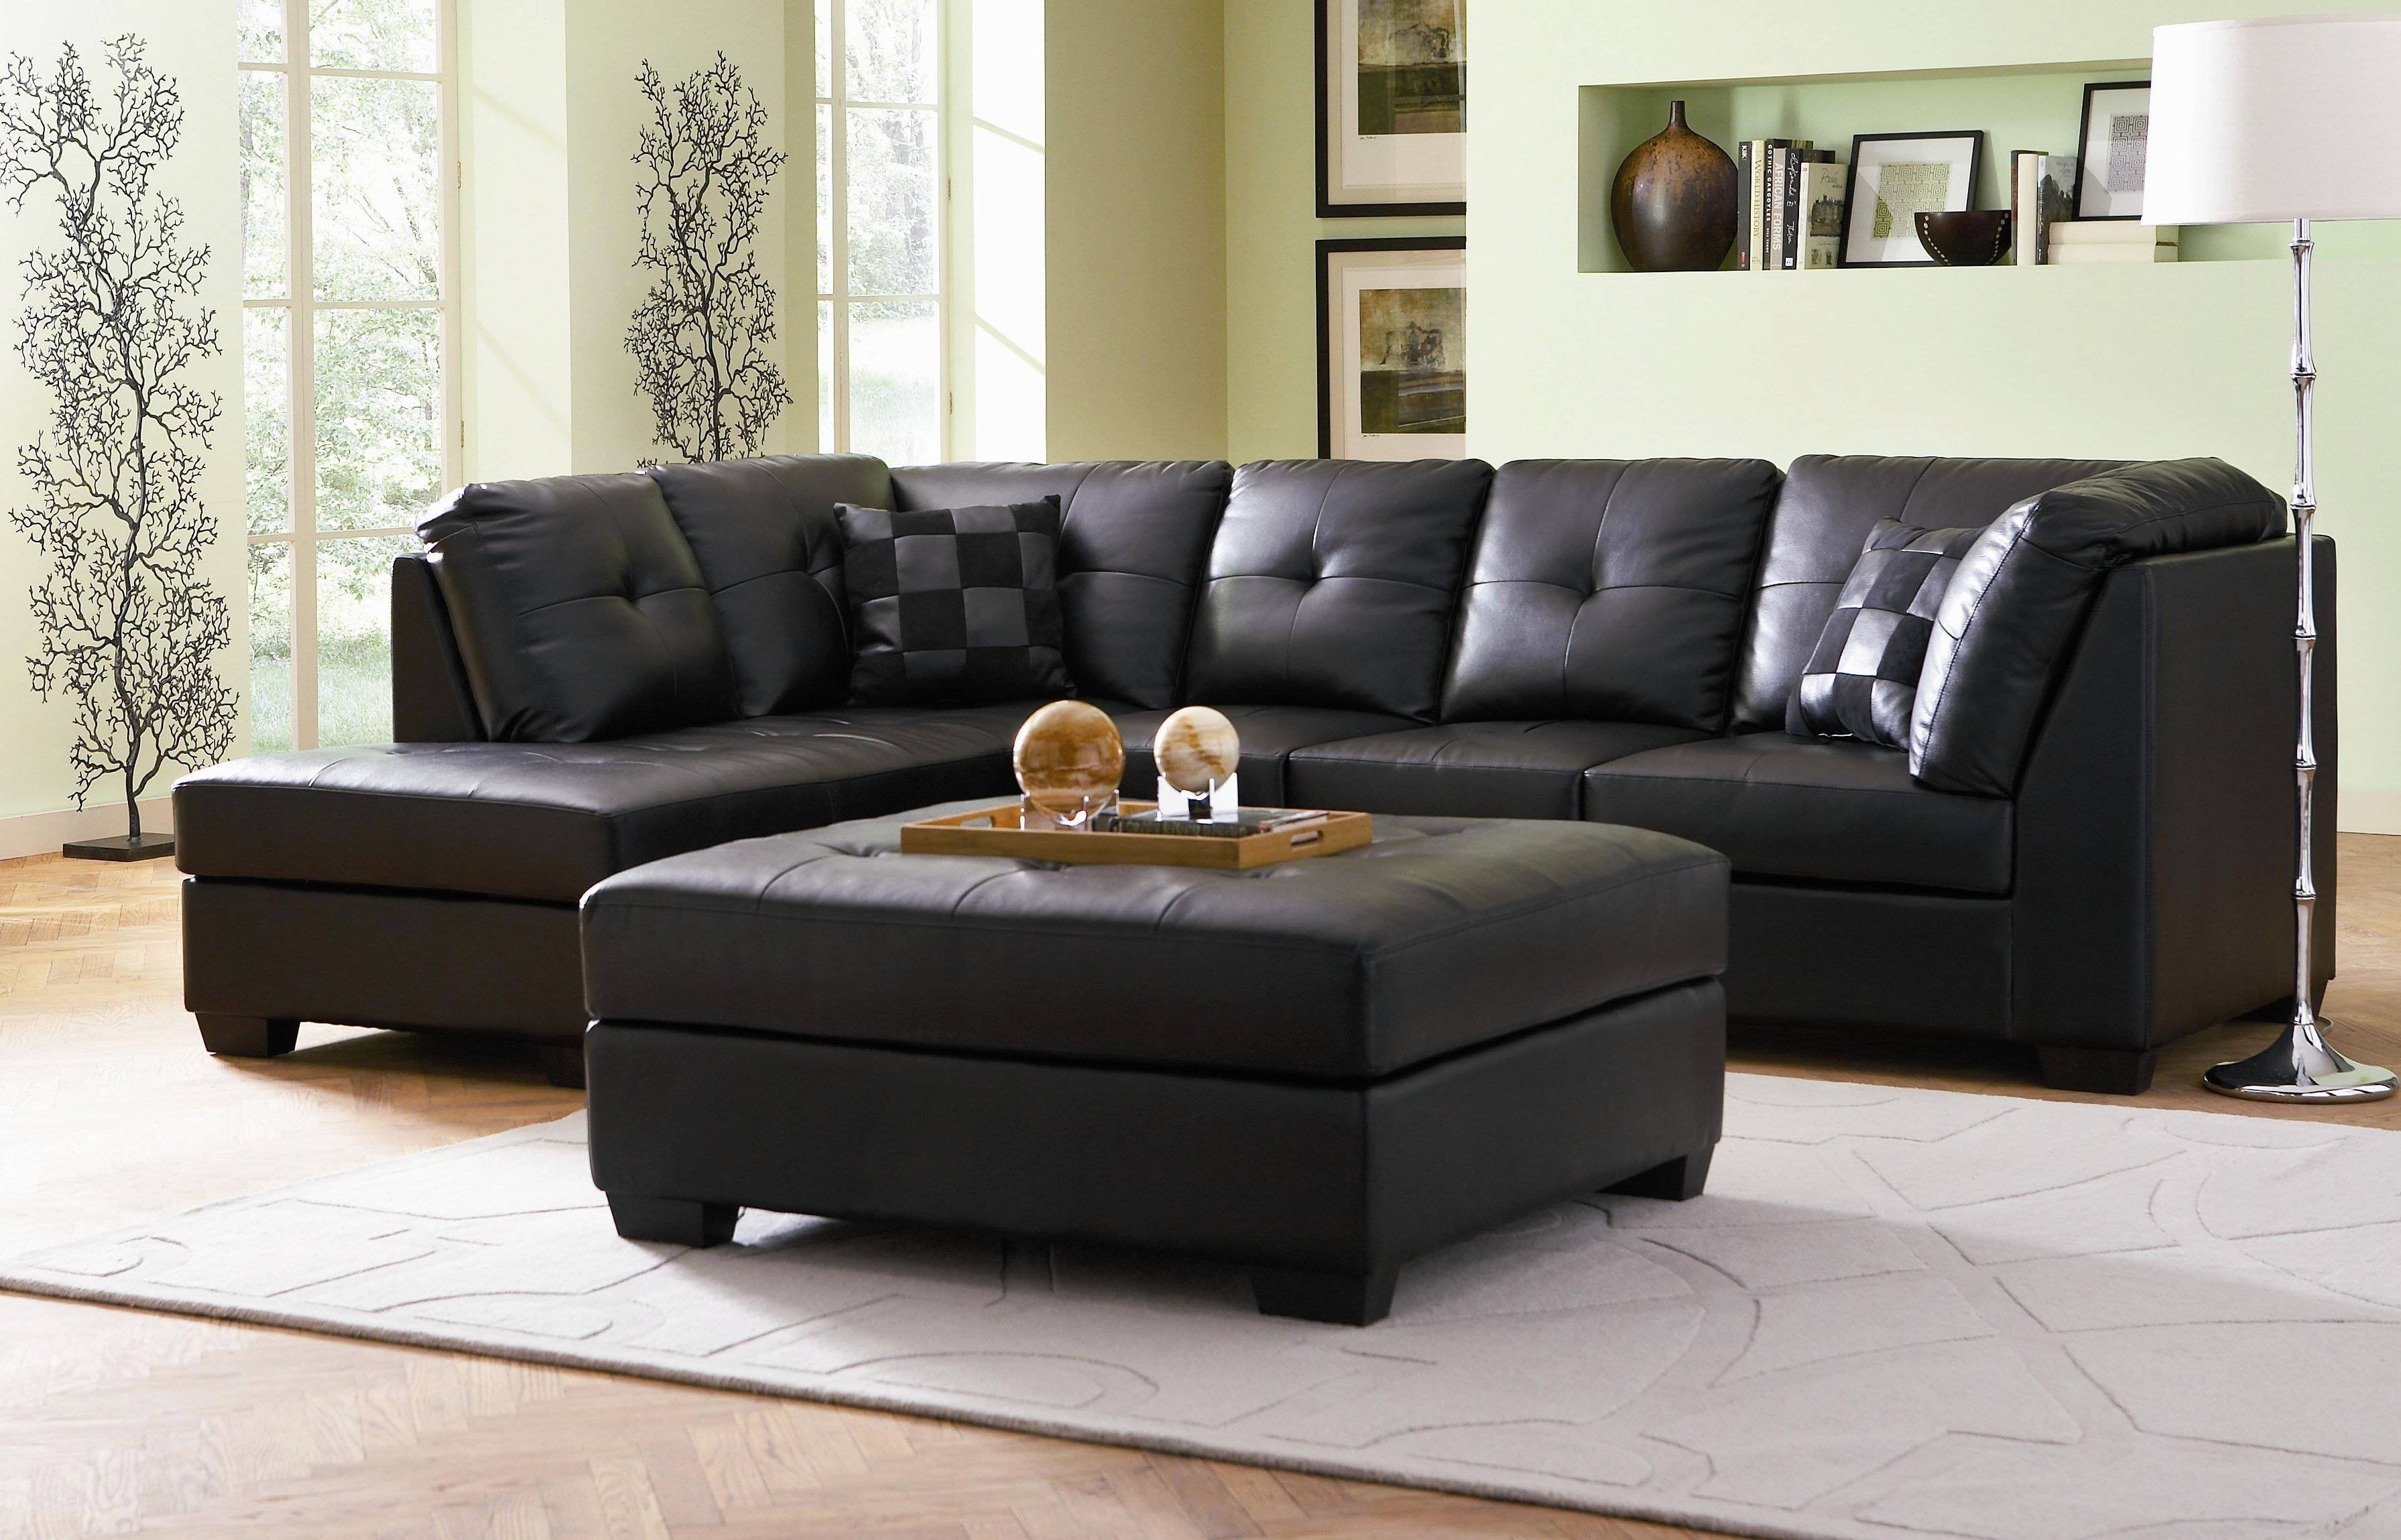 Living Room: Using Elegant Cindy Crawford Sectional Sofa For Throughout Cindy Crawford Furniture Sectional Sofas (View 14 of 15)